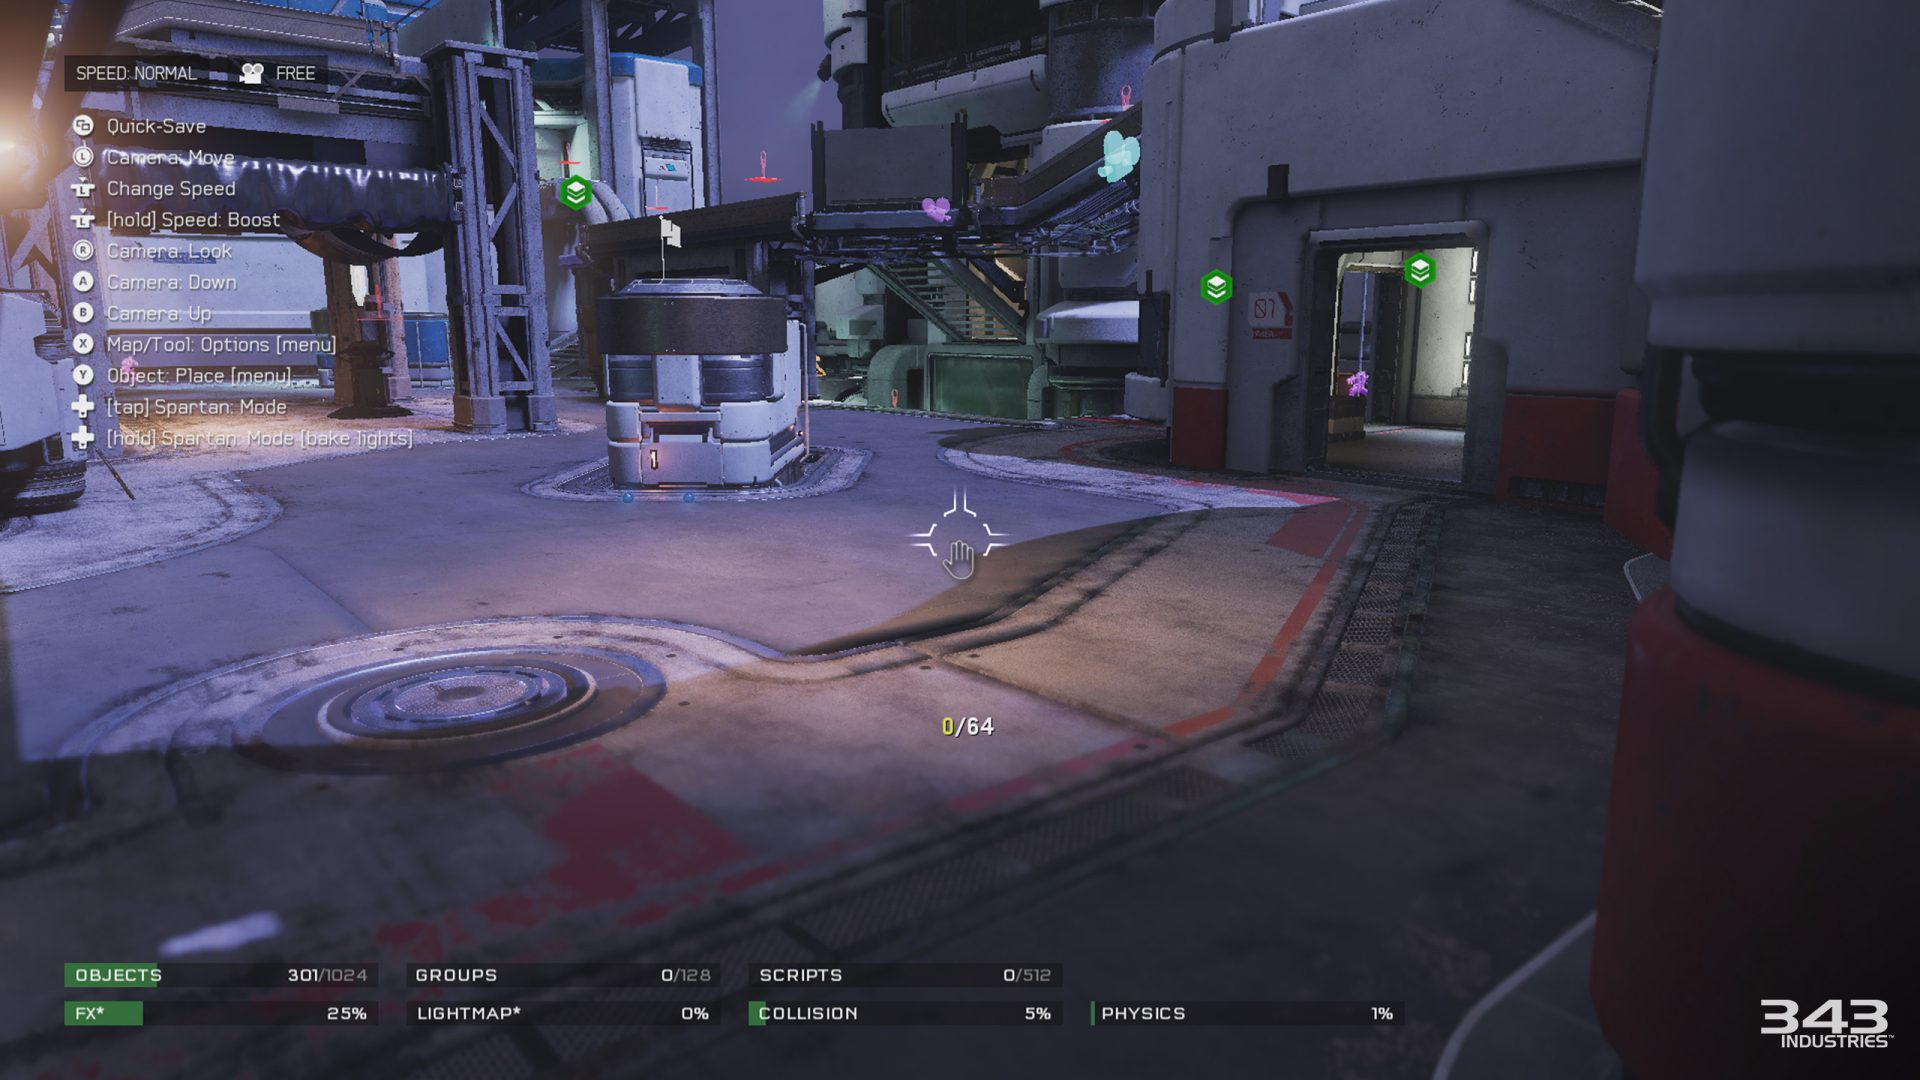 Next Halo 5 Update Detailed